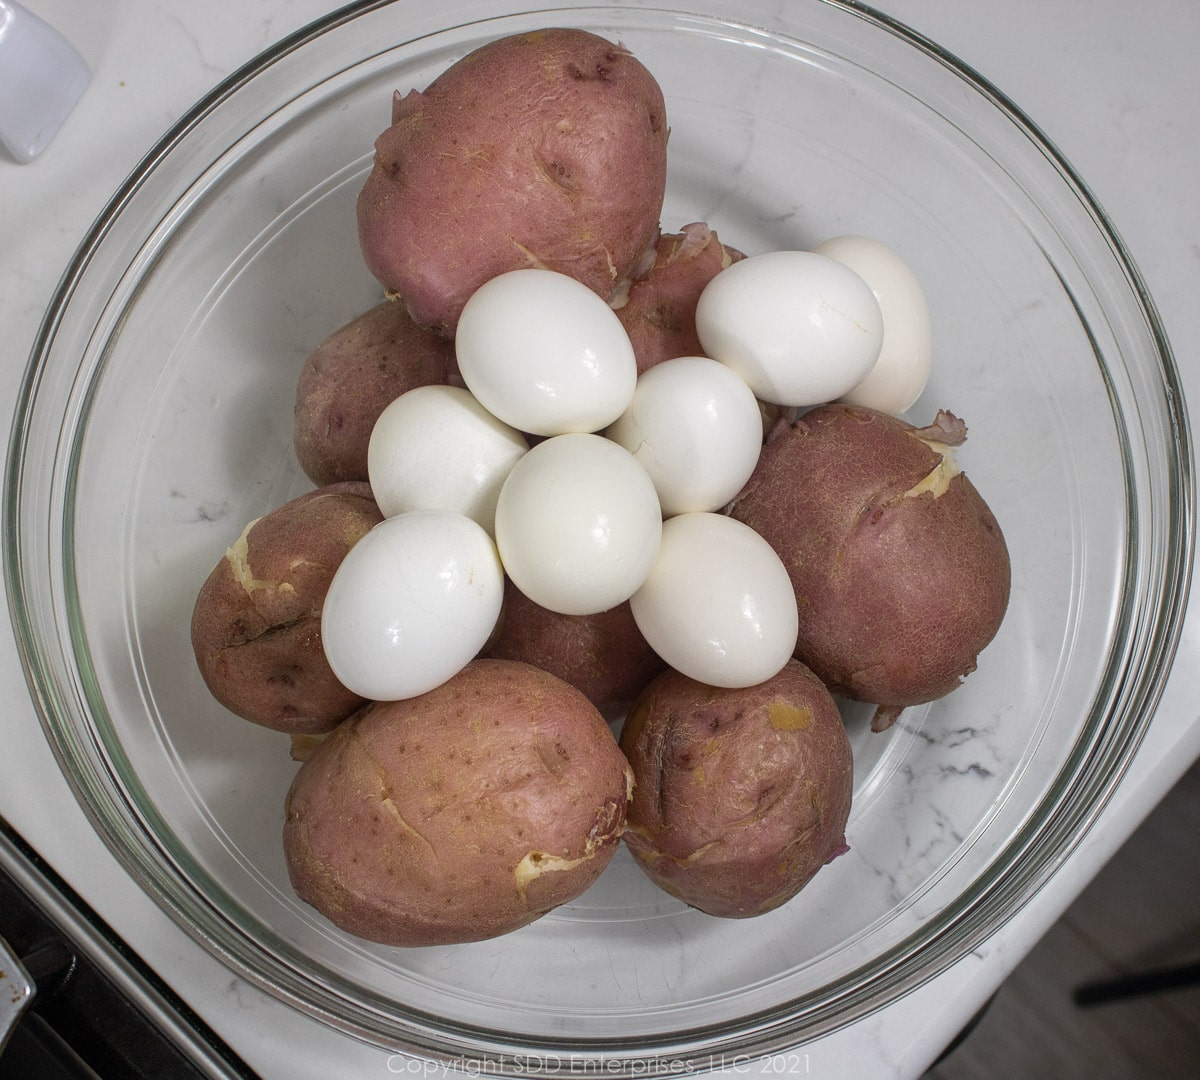 boiled eggs and potatoes in a glass bowl